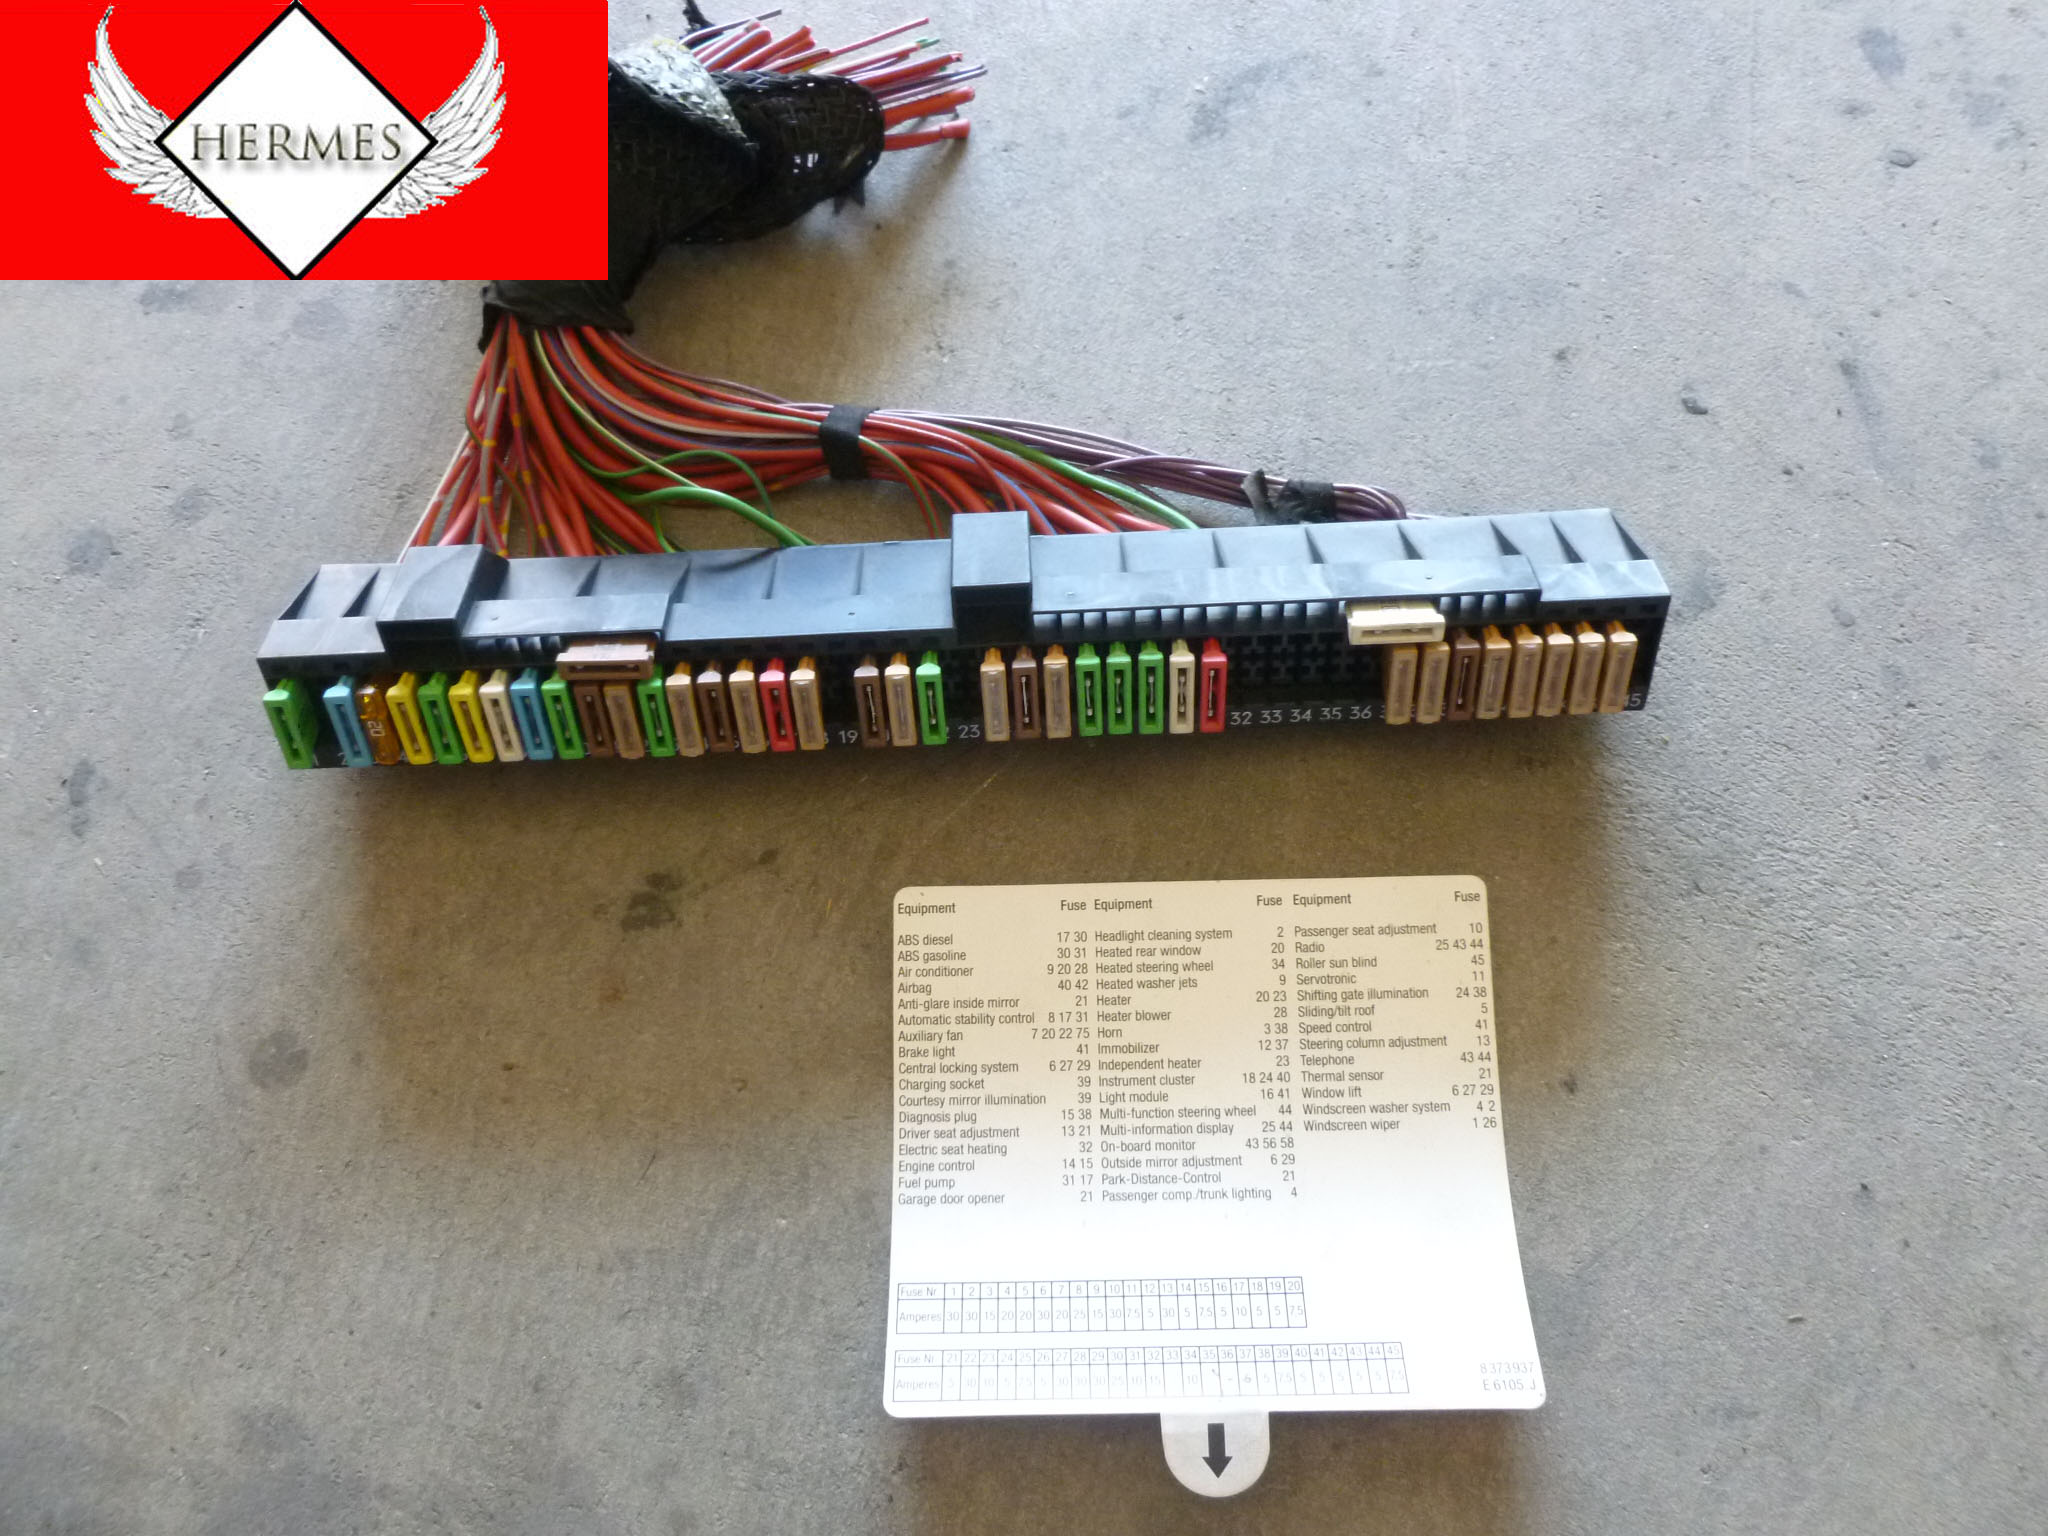 1997 bmw 528i e39 fuse box above glove box 61138366570 hermes rh hermesautoparts com 1997 bmw m3 fuse box 1997 bmw 540i fuse box location